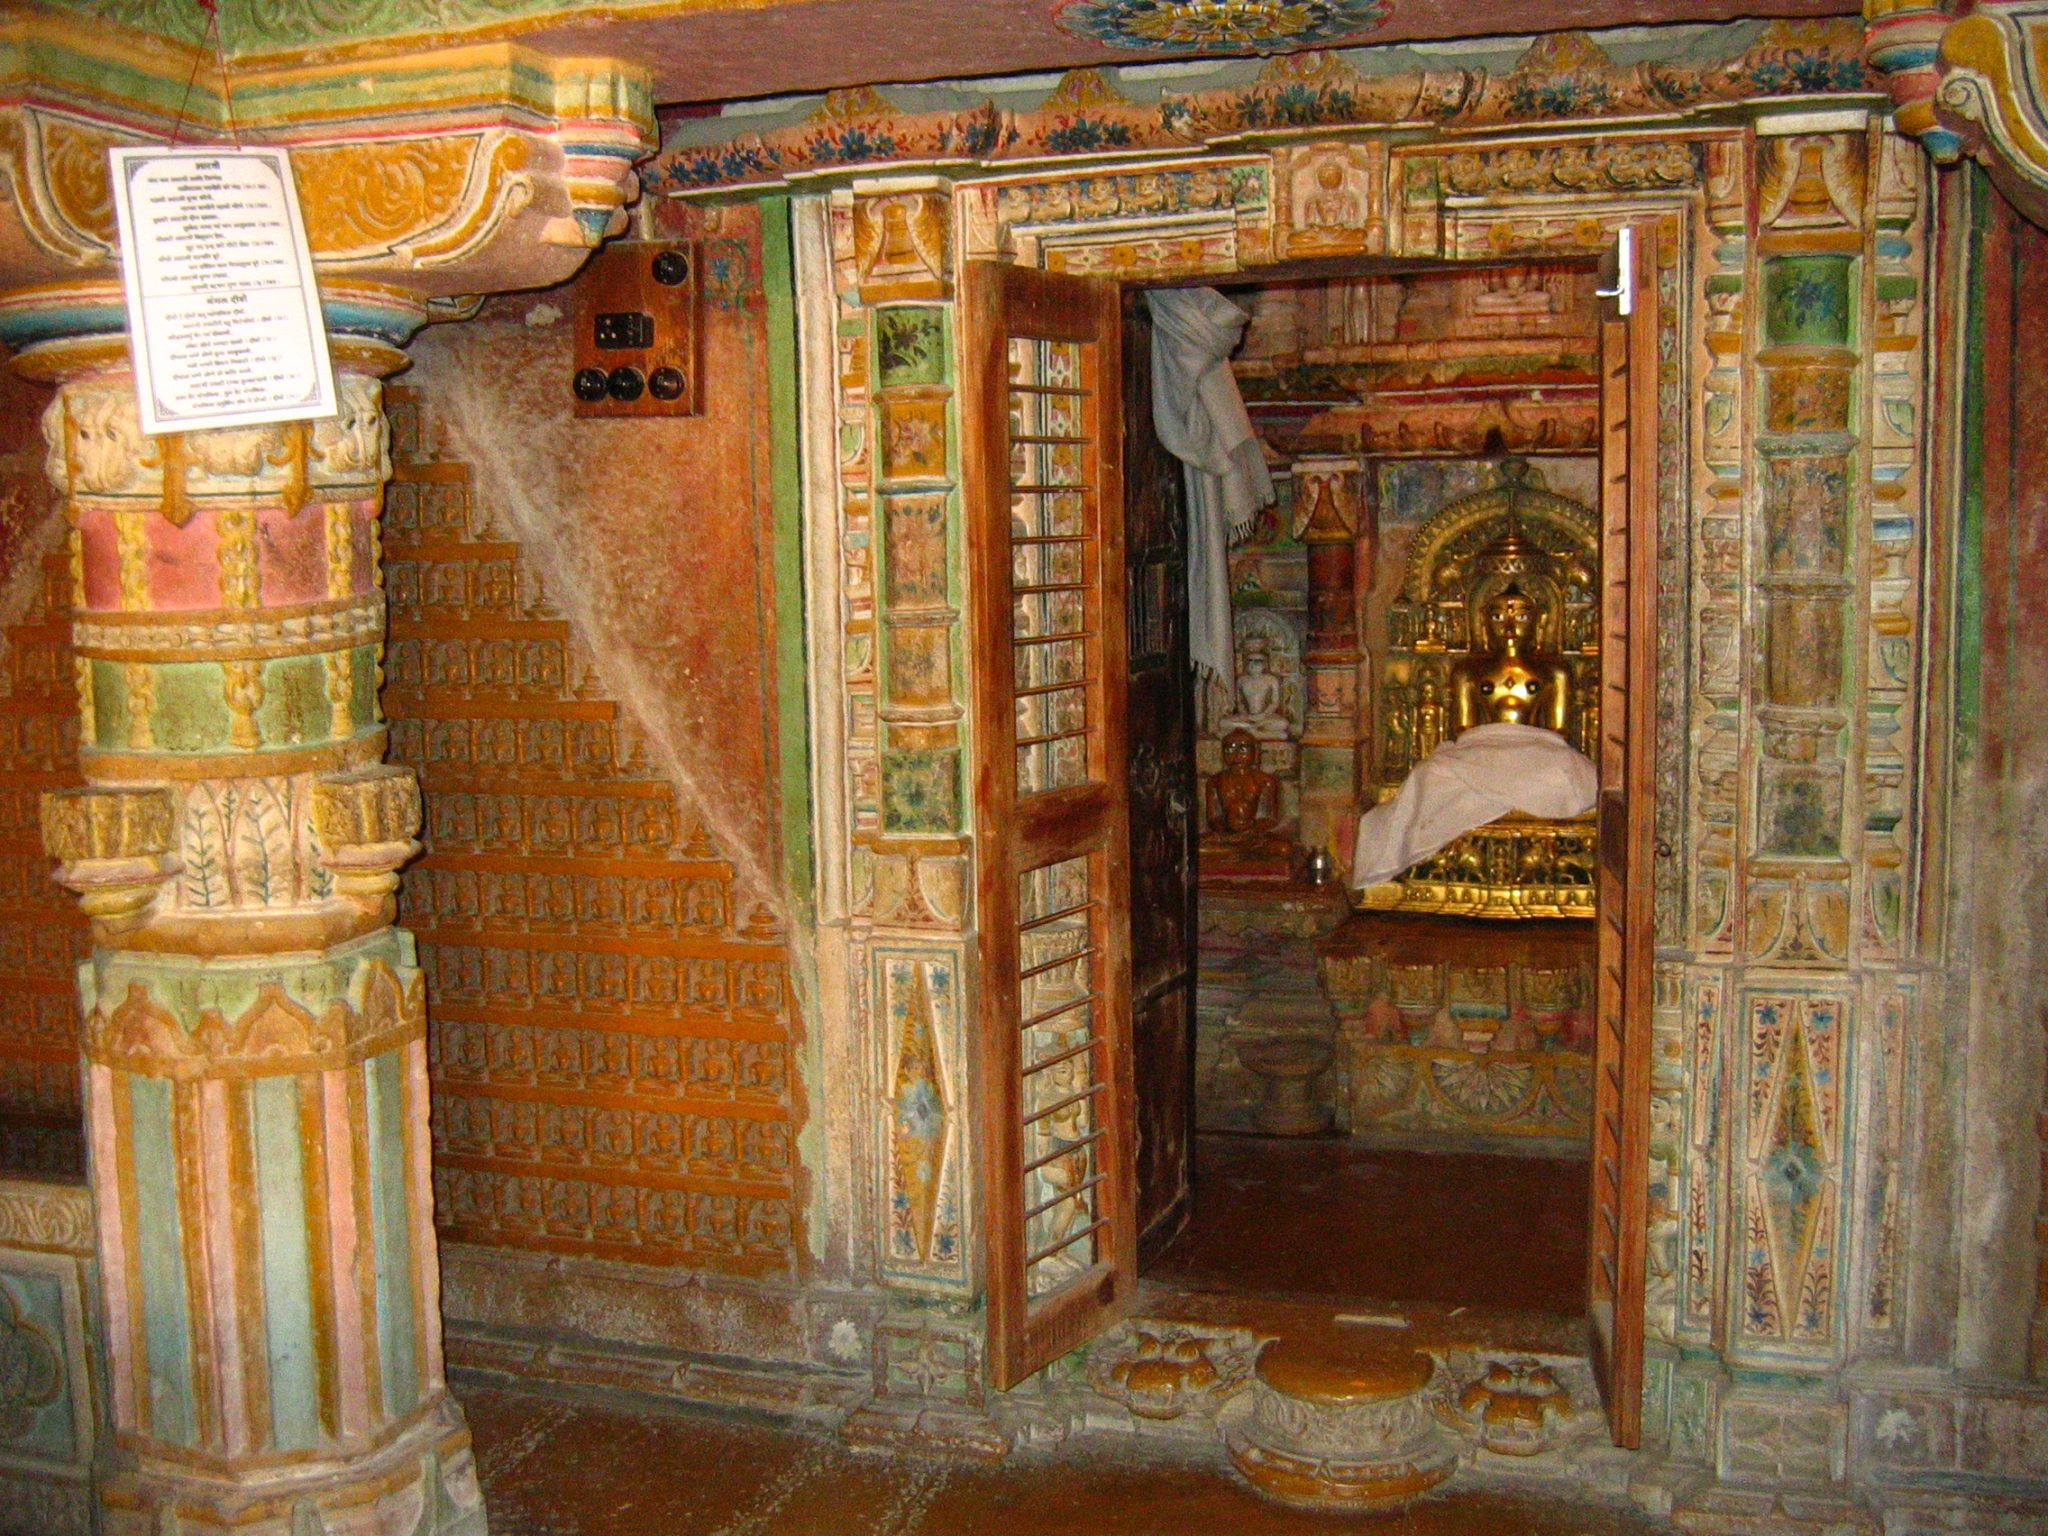 Inside of Jain Temple